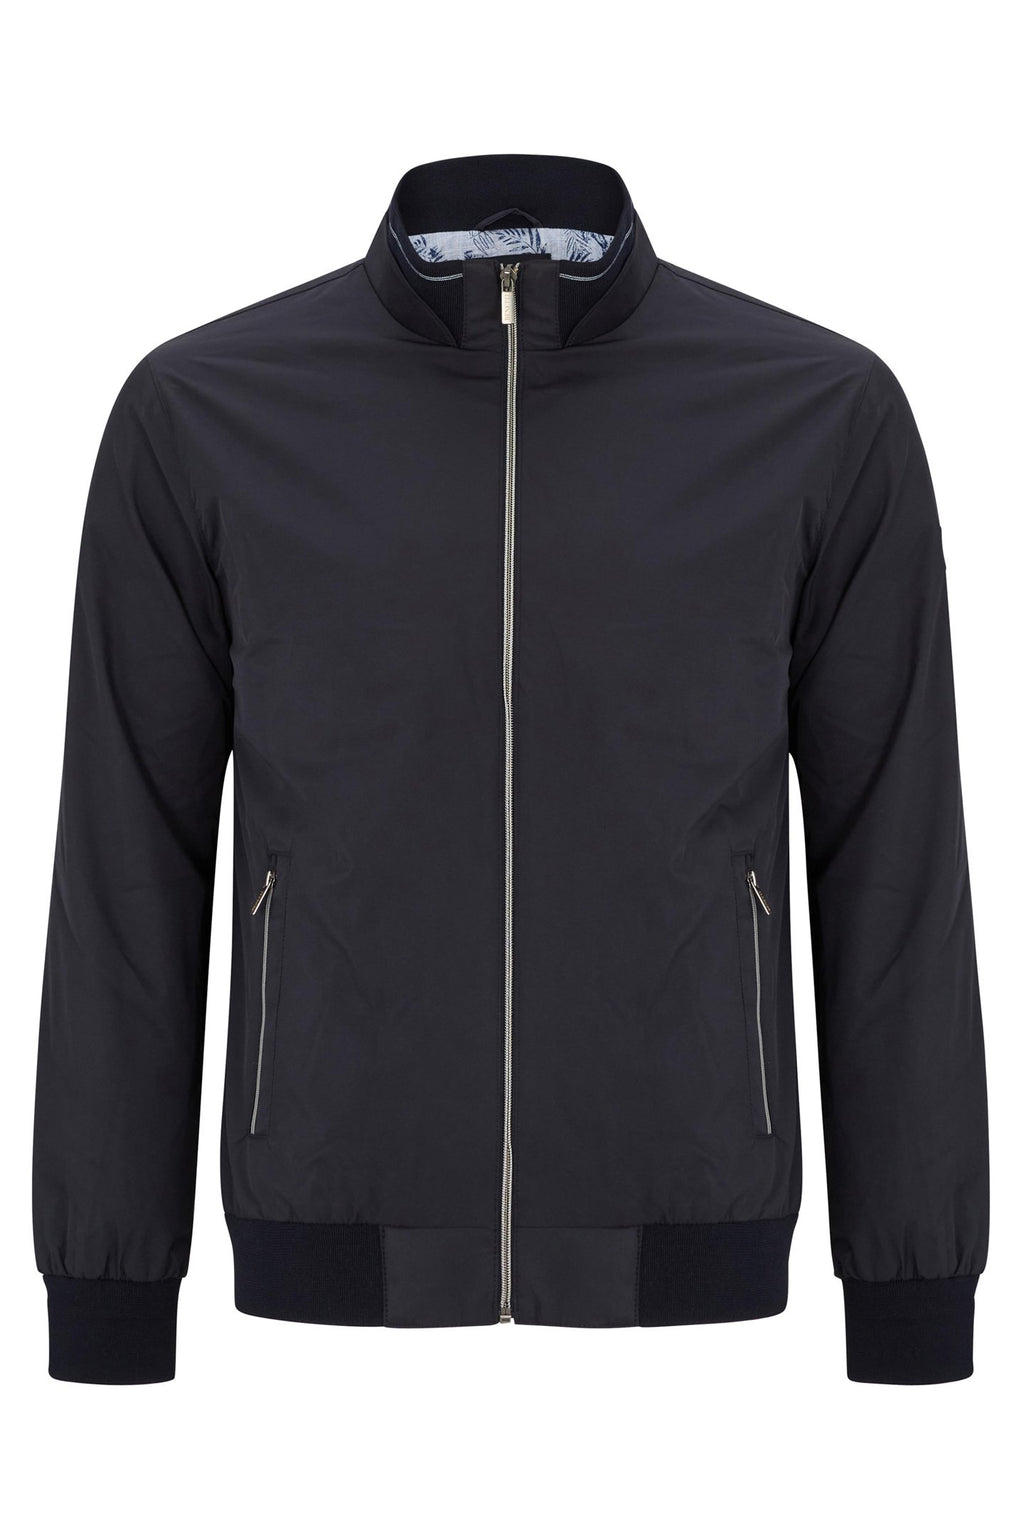 Benetti Vienna Navy Jacket - JJ Donnelly